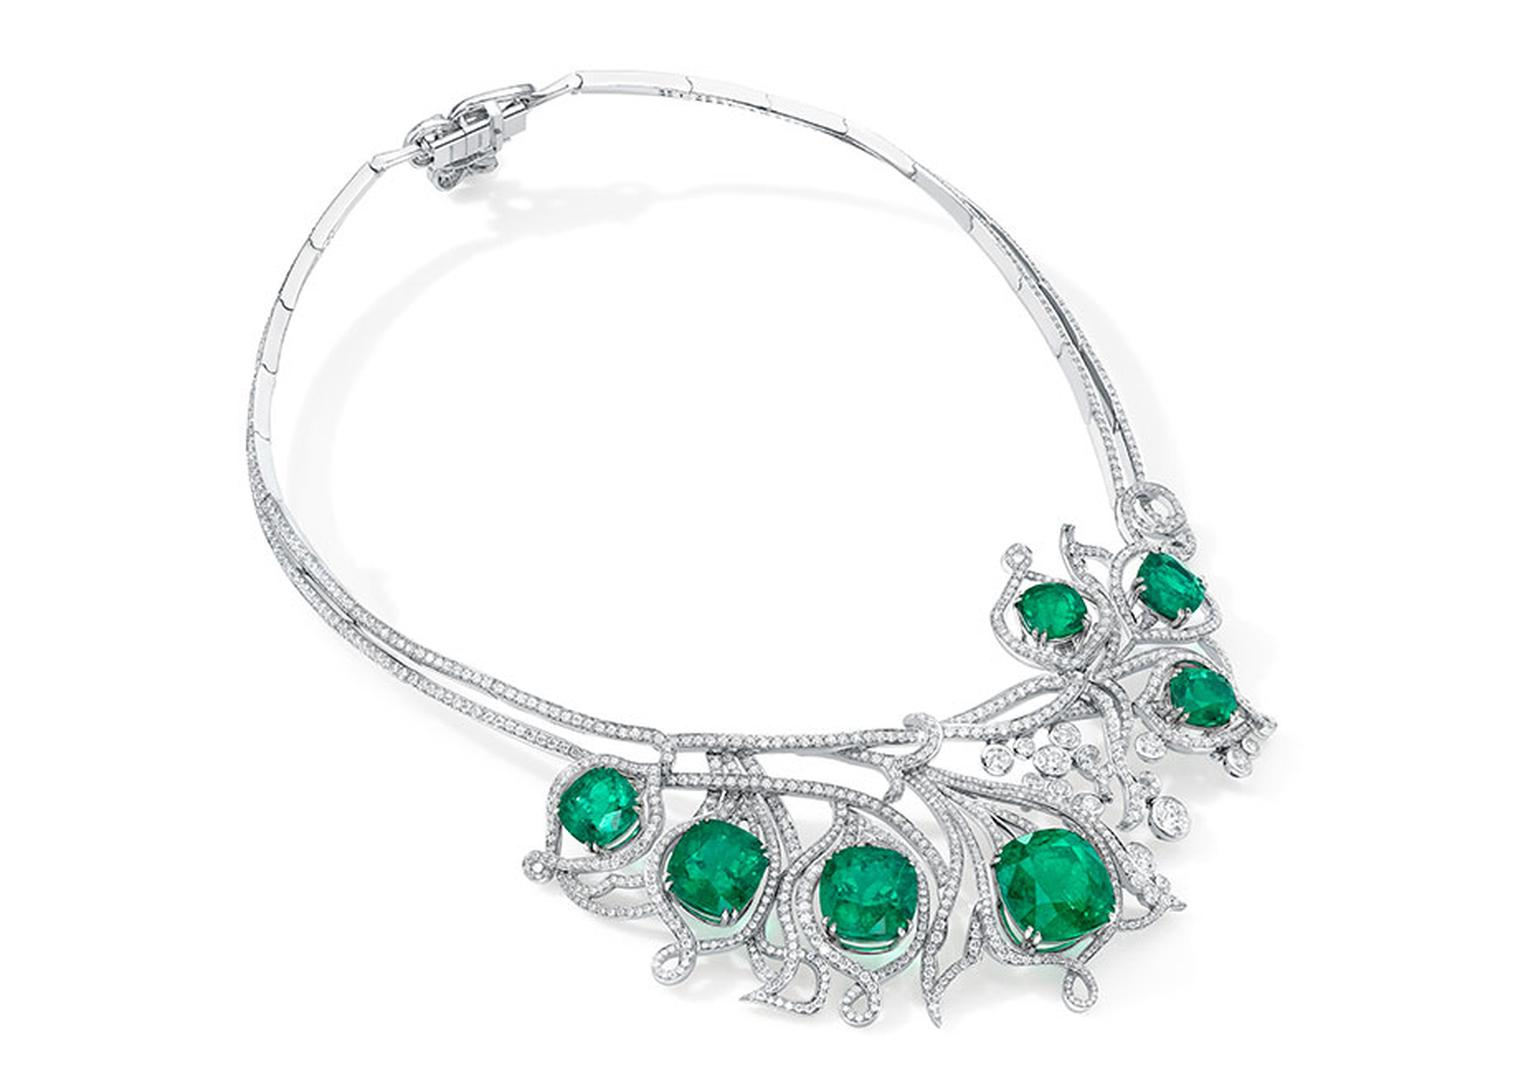 Boodles' Emerald Greenfire necklace is set with 46.20ct of cushion-cut emeralds and 17.38ct of brilliant-cut diamonds